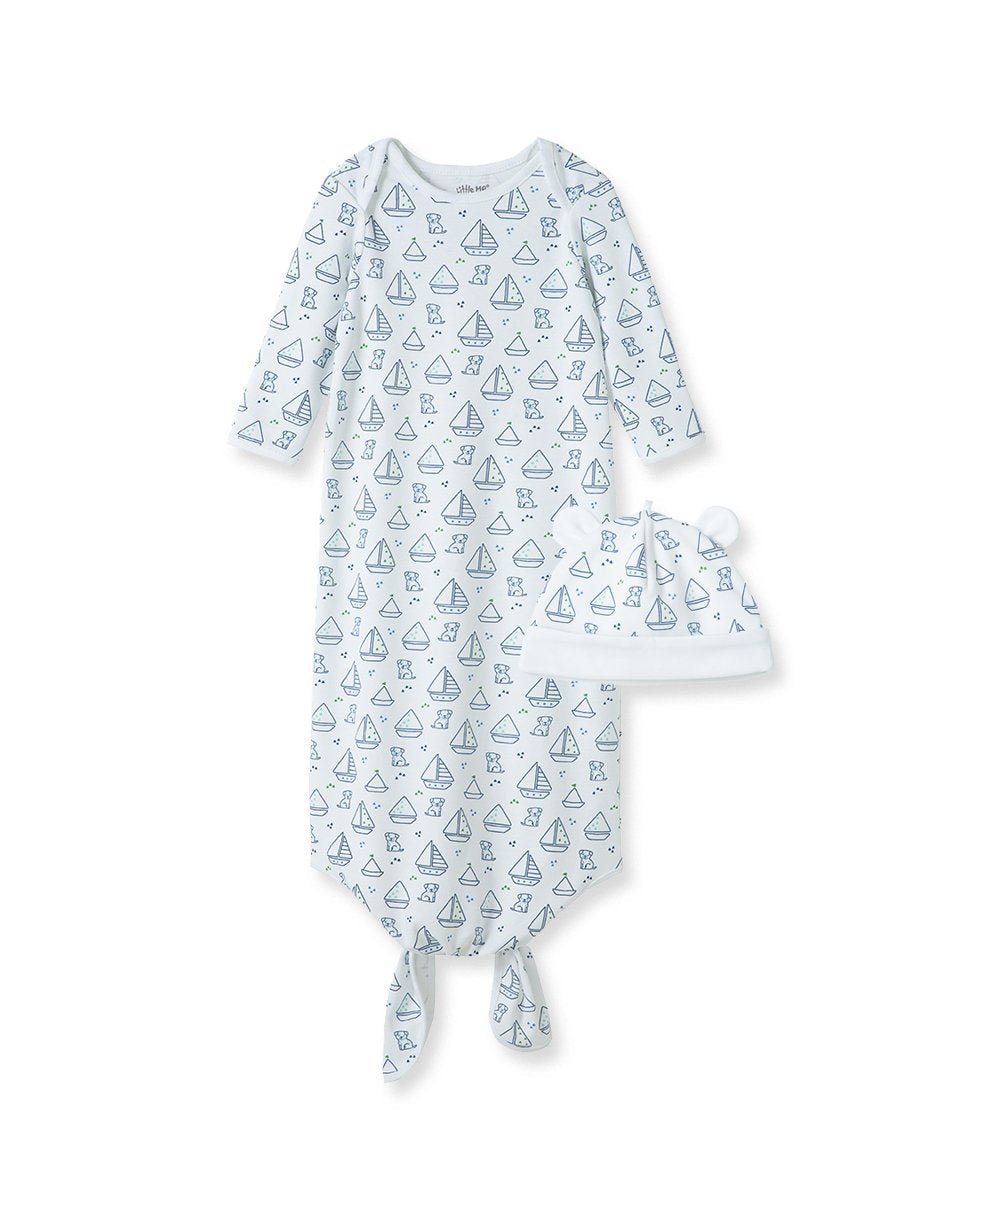 Boating Buddies Knot Sleeper Gown and Hat